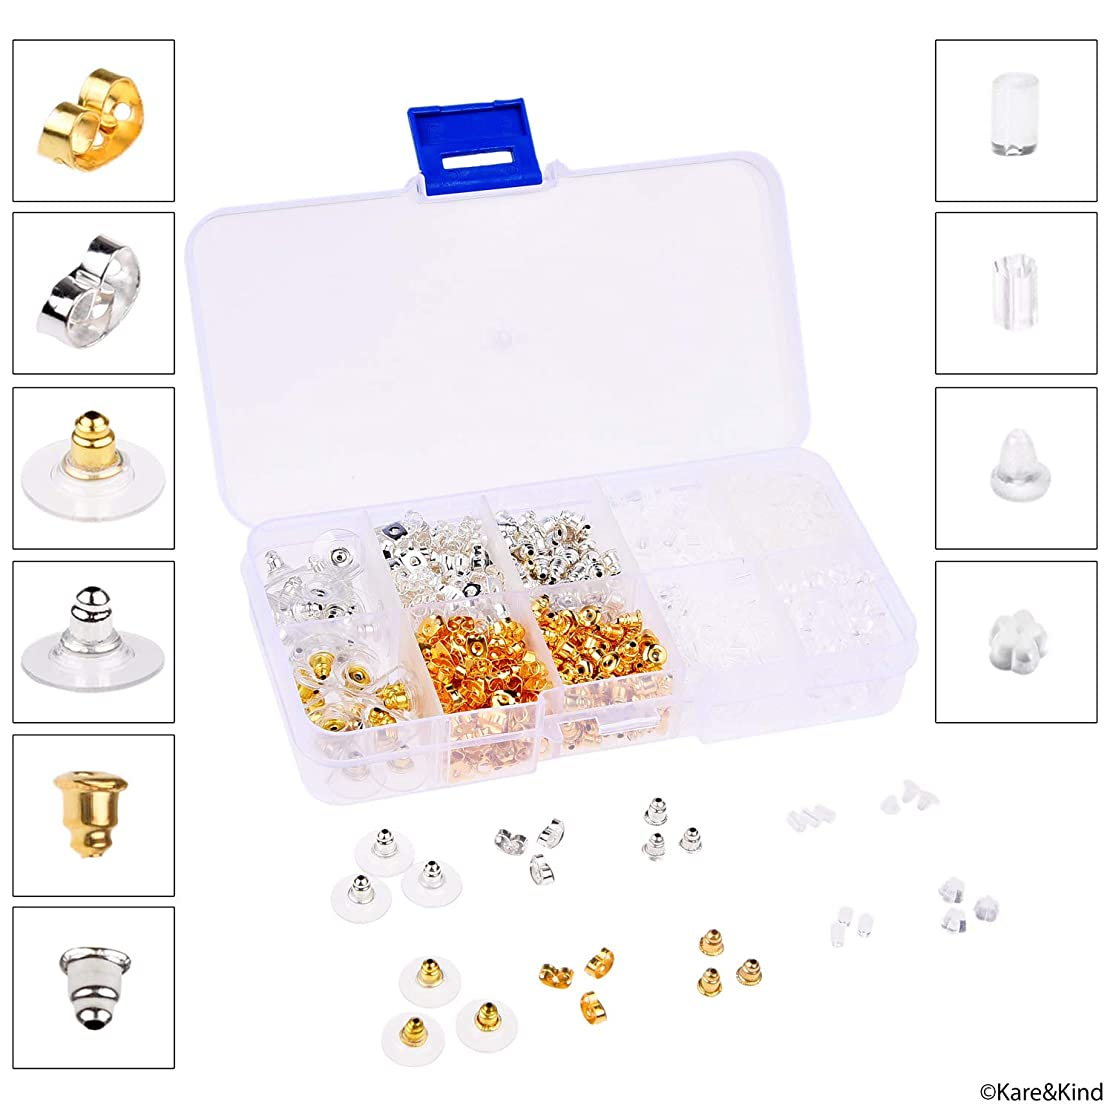 Earring Backs - 1400 Pieces - 10 Different Versions - Butterfly, Bullet Clutch, Flat Back Pad, Cylinder, etc. - Gold/Silver Color and Soft Rubber - Fits Straight Ear Studs or Fish Hook Earrings